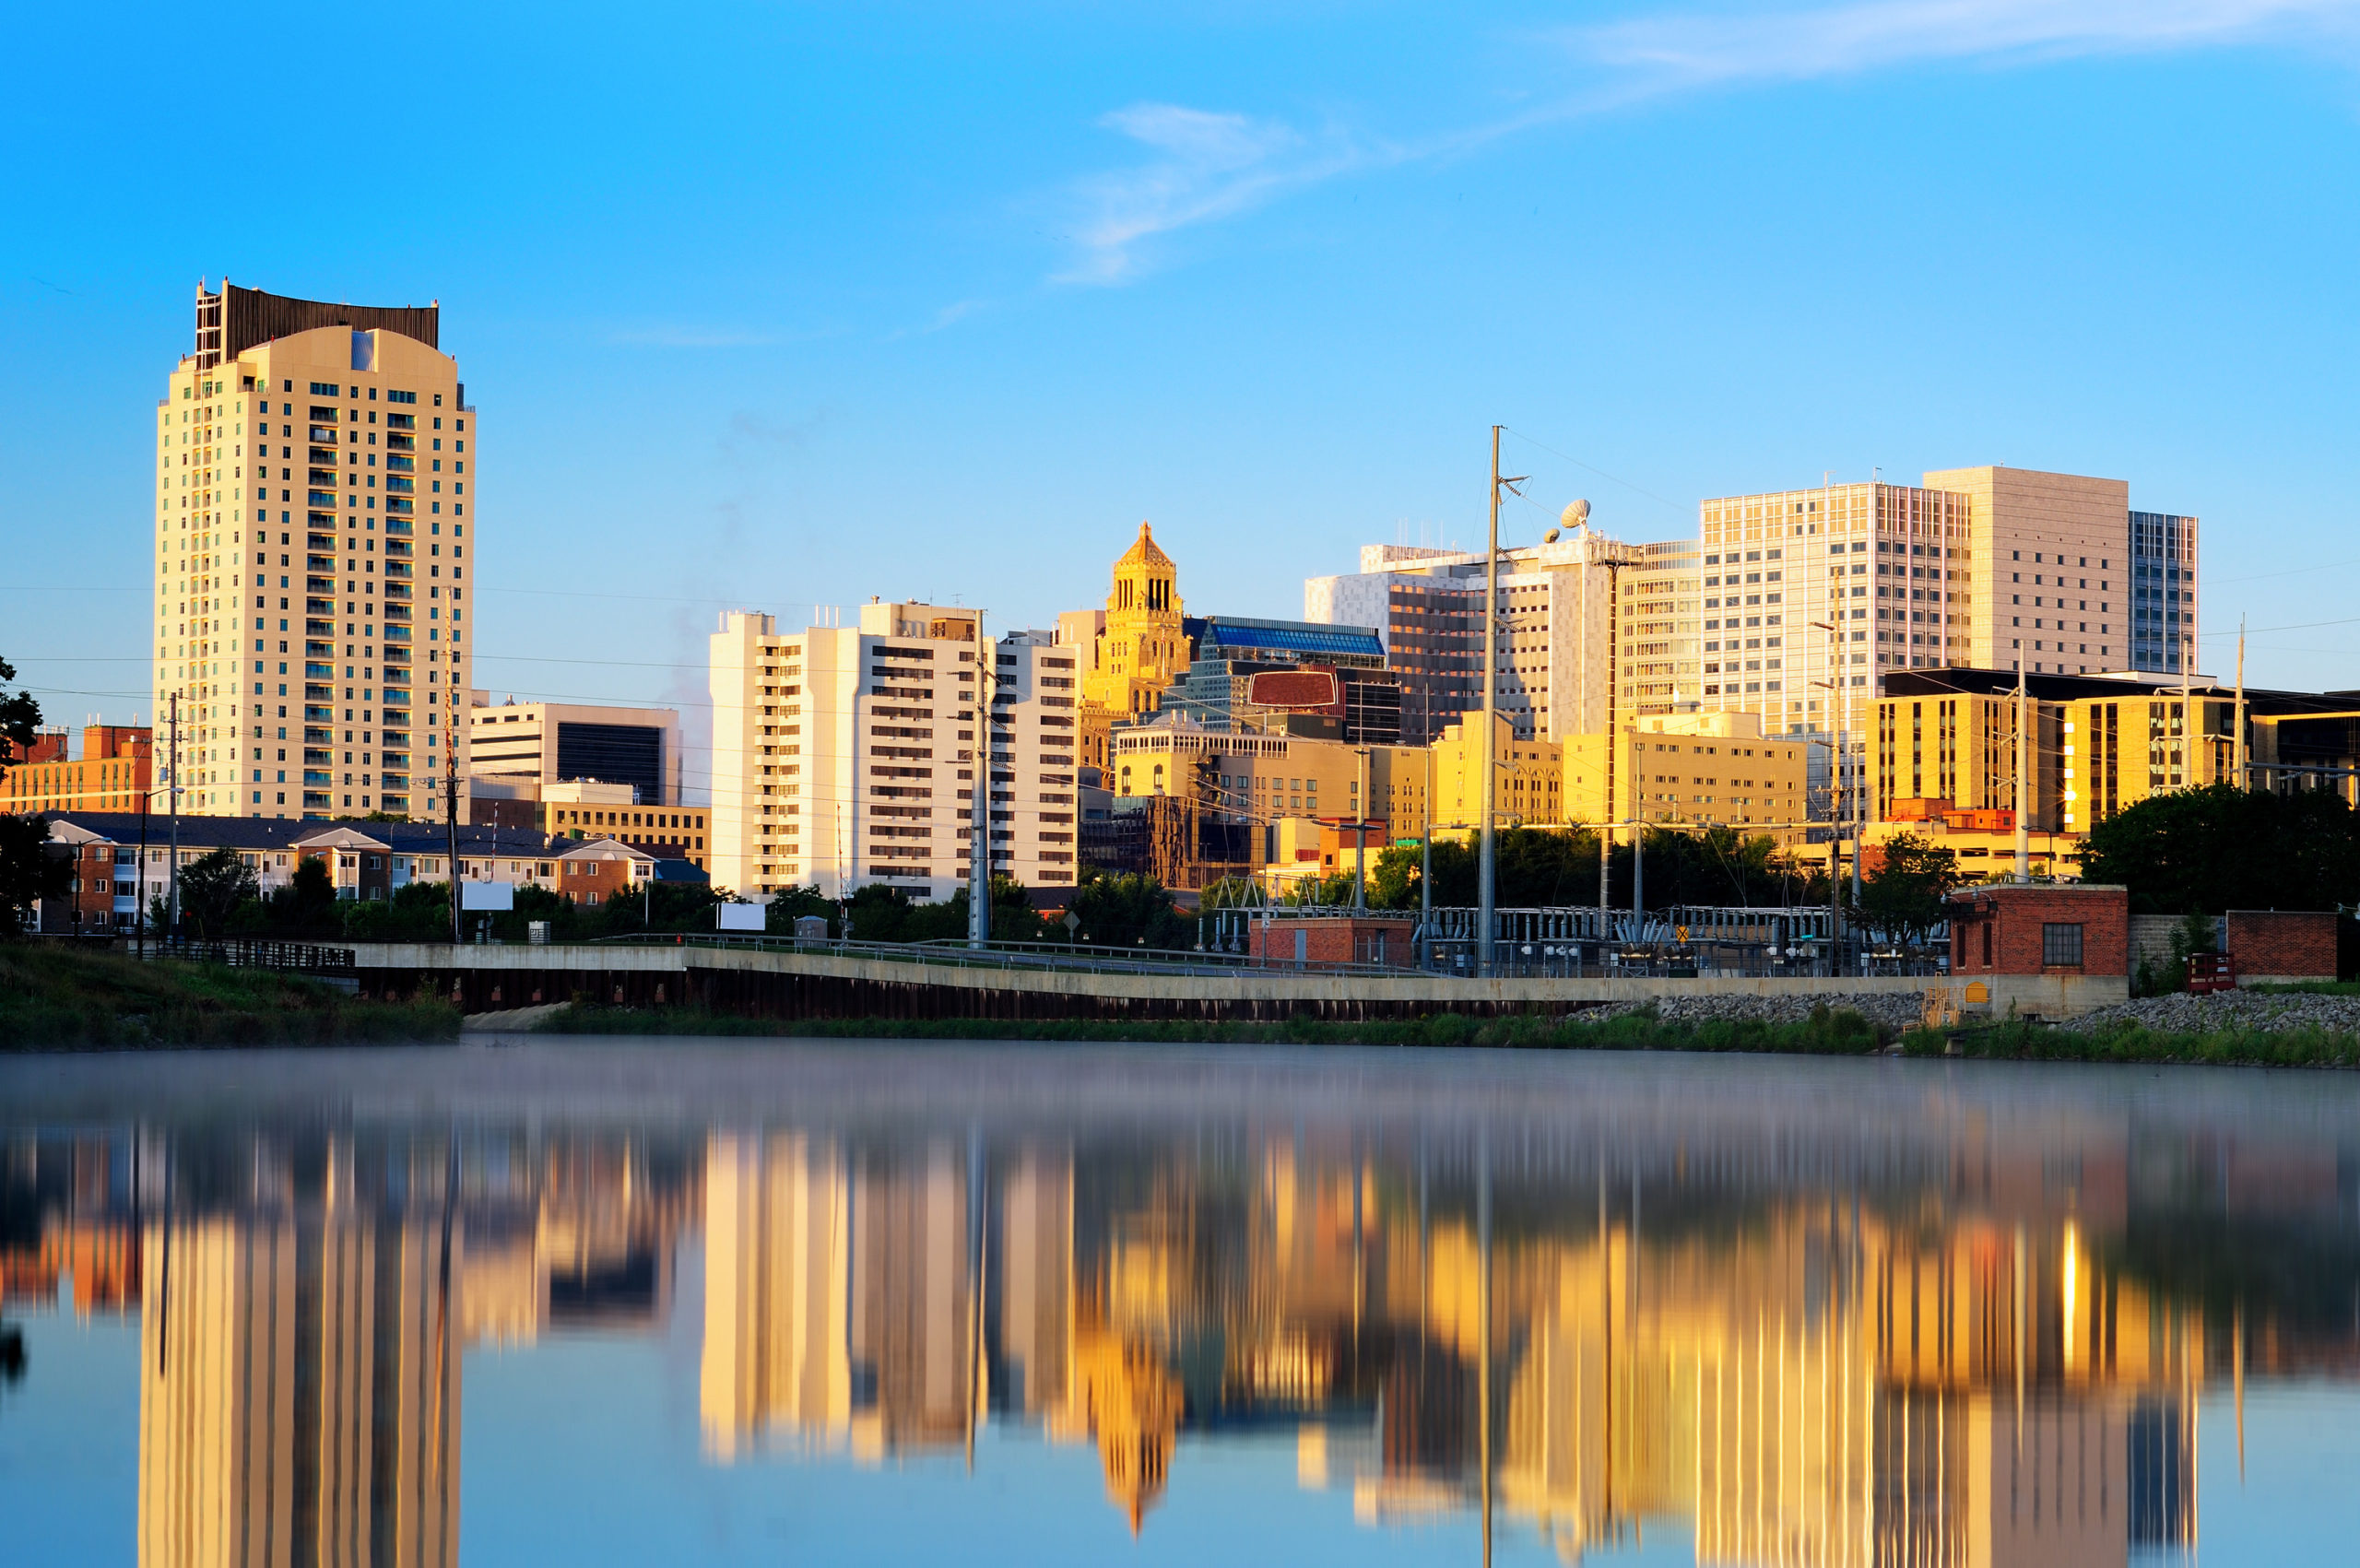 Calm morning in rochester, minnesota with a view on the famous mayo clinic with the reflection of the city on the water